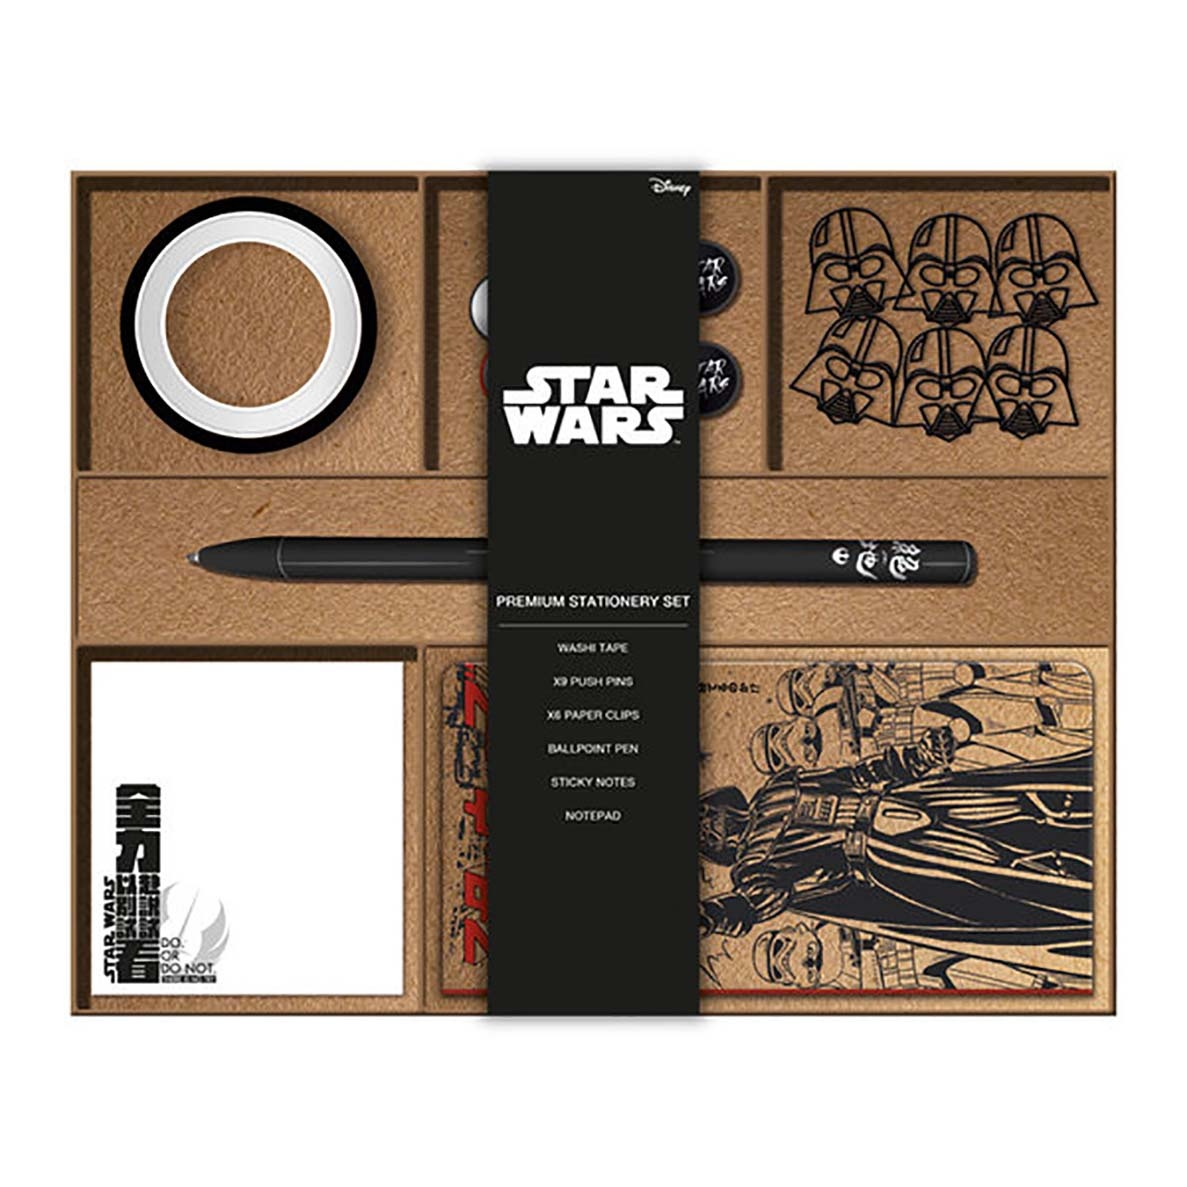 Hole In The Wall Star Wars Japanese Social Stationery Set